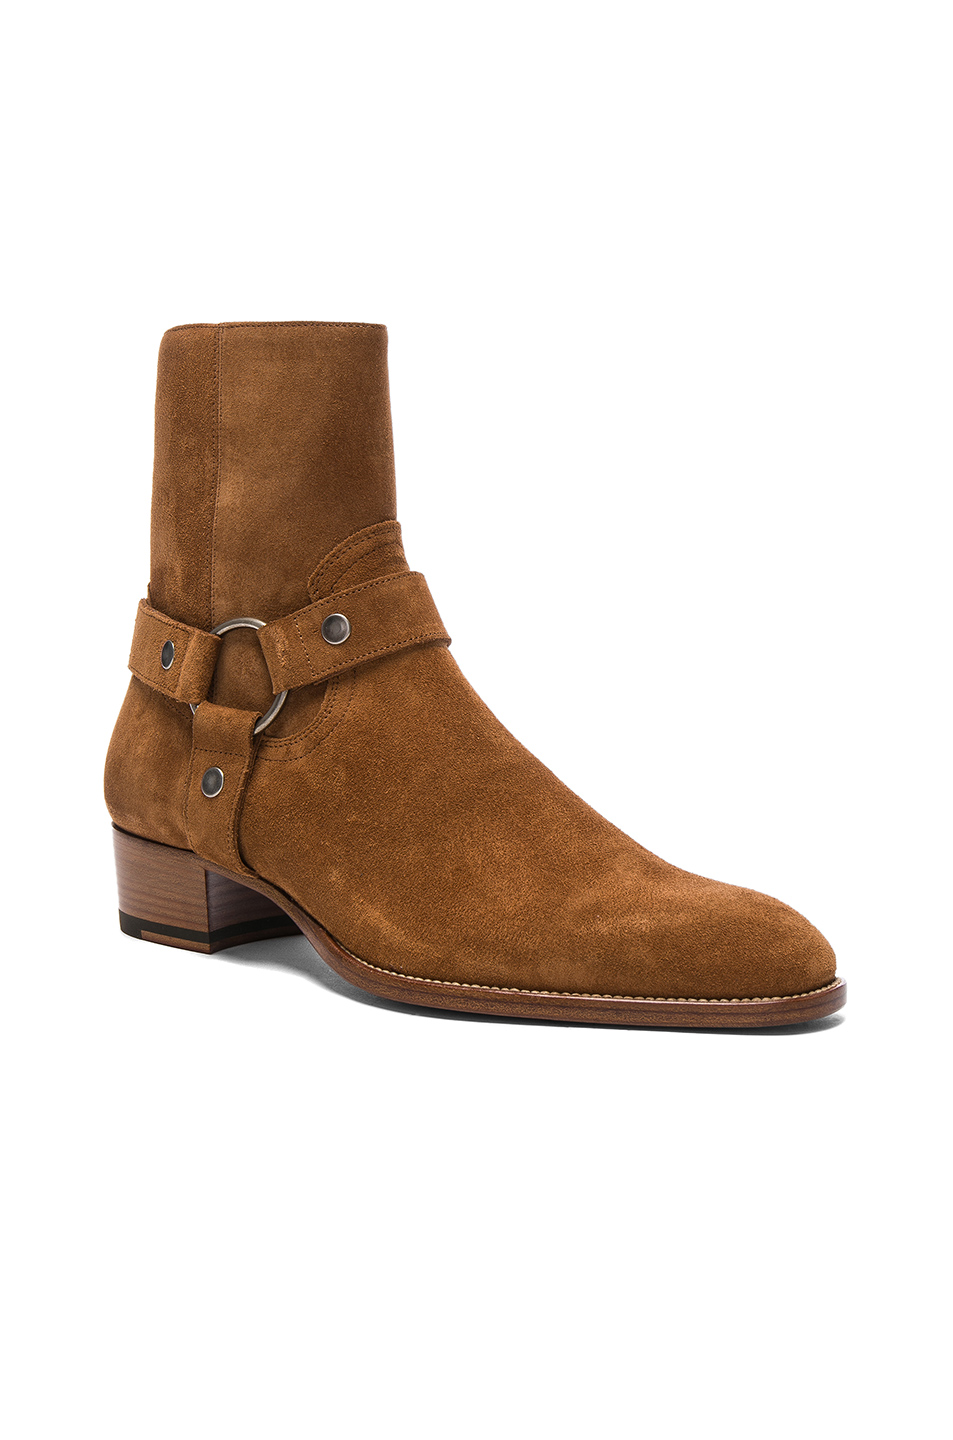 Saint Laurent Wyatt Suede Harness Boots in Brown